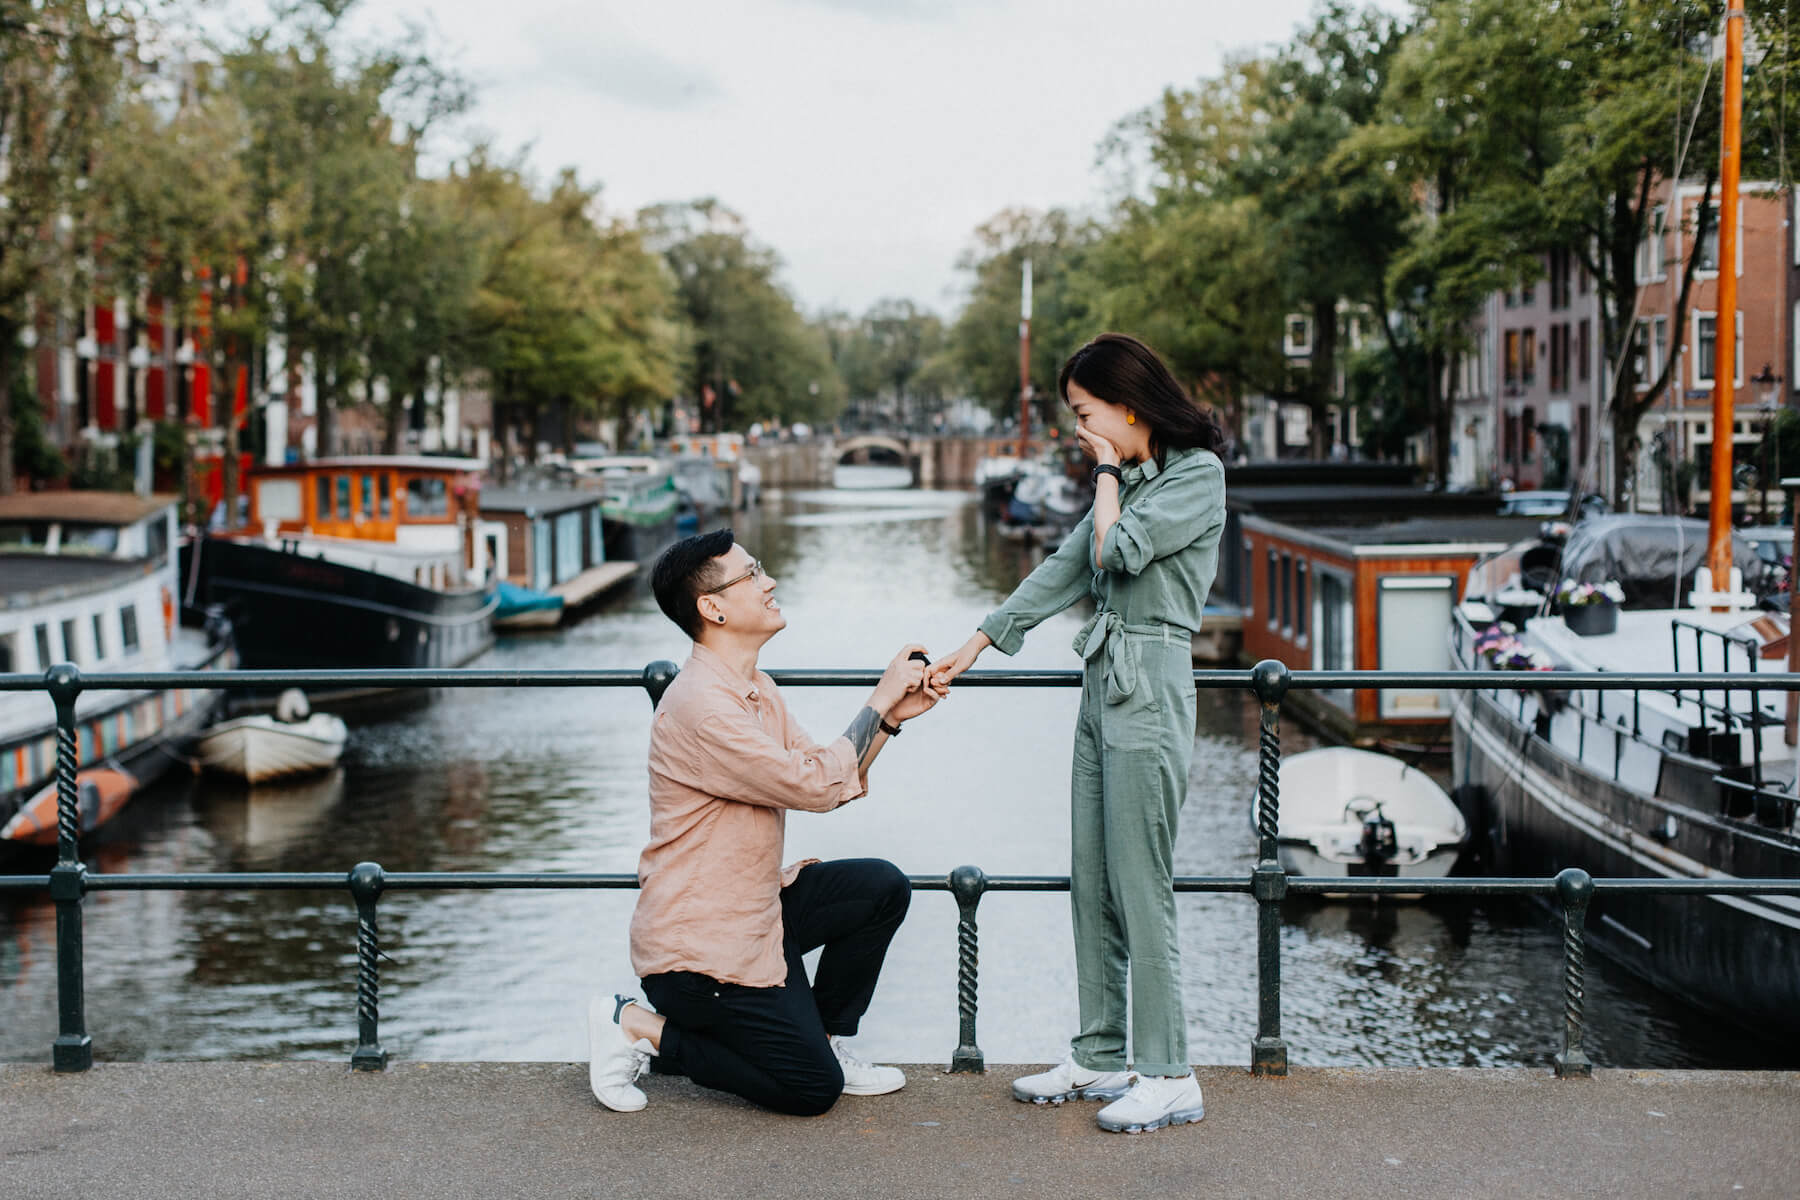 the man is on his knee and proposing to the woman in Amsterdam, Netherlands